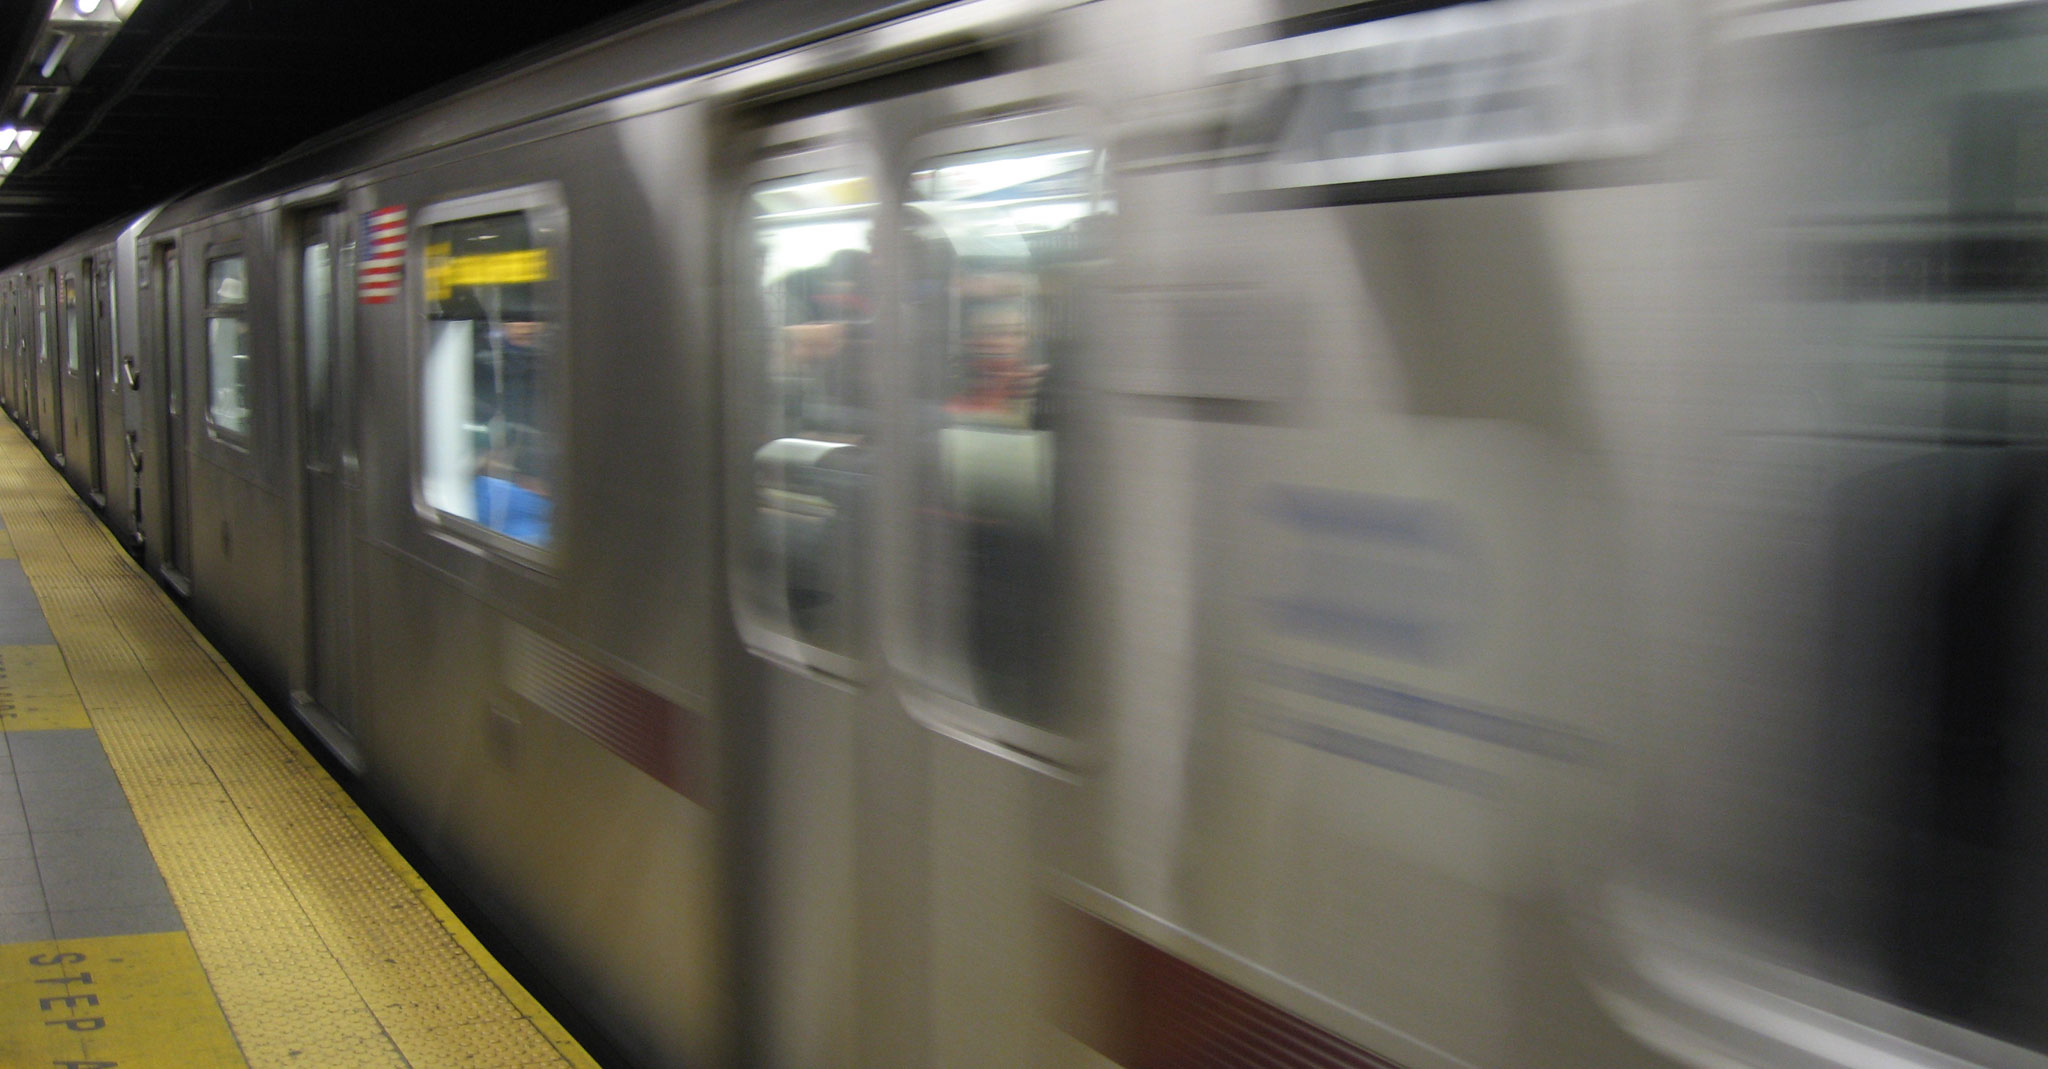 Nyc subway 6 train cropped 1532614003